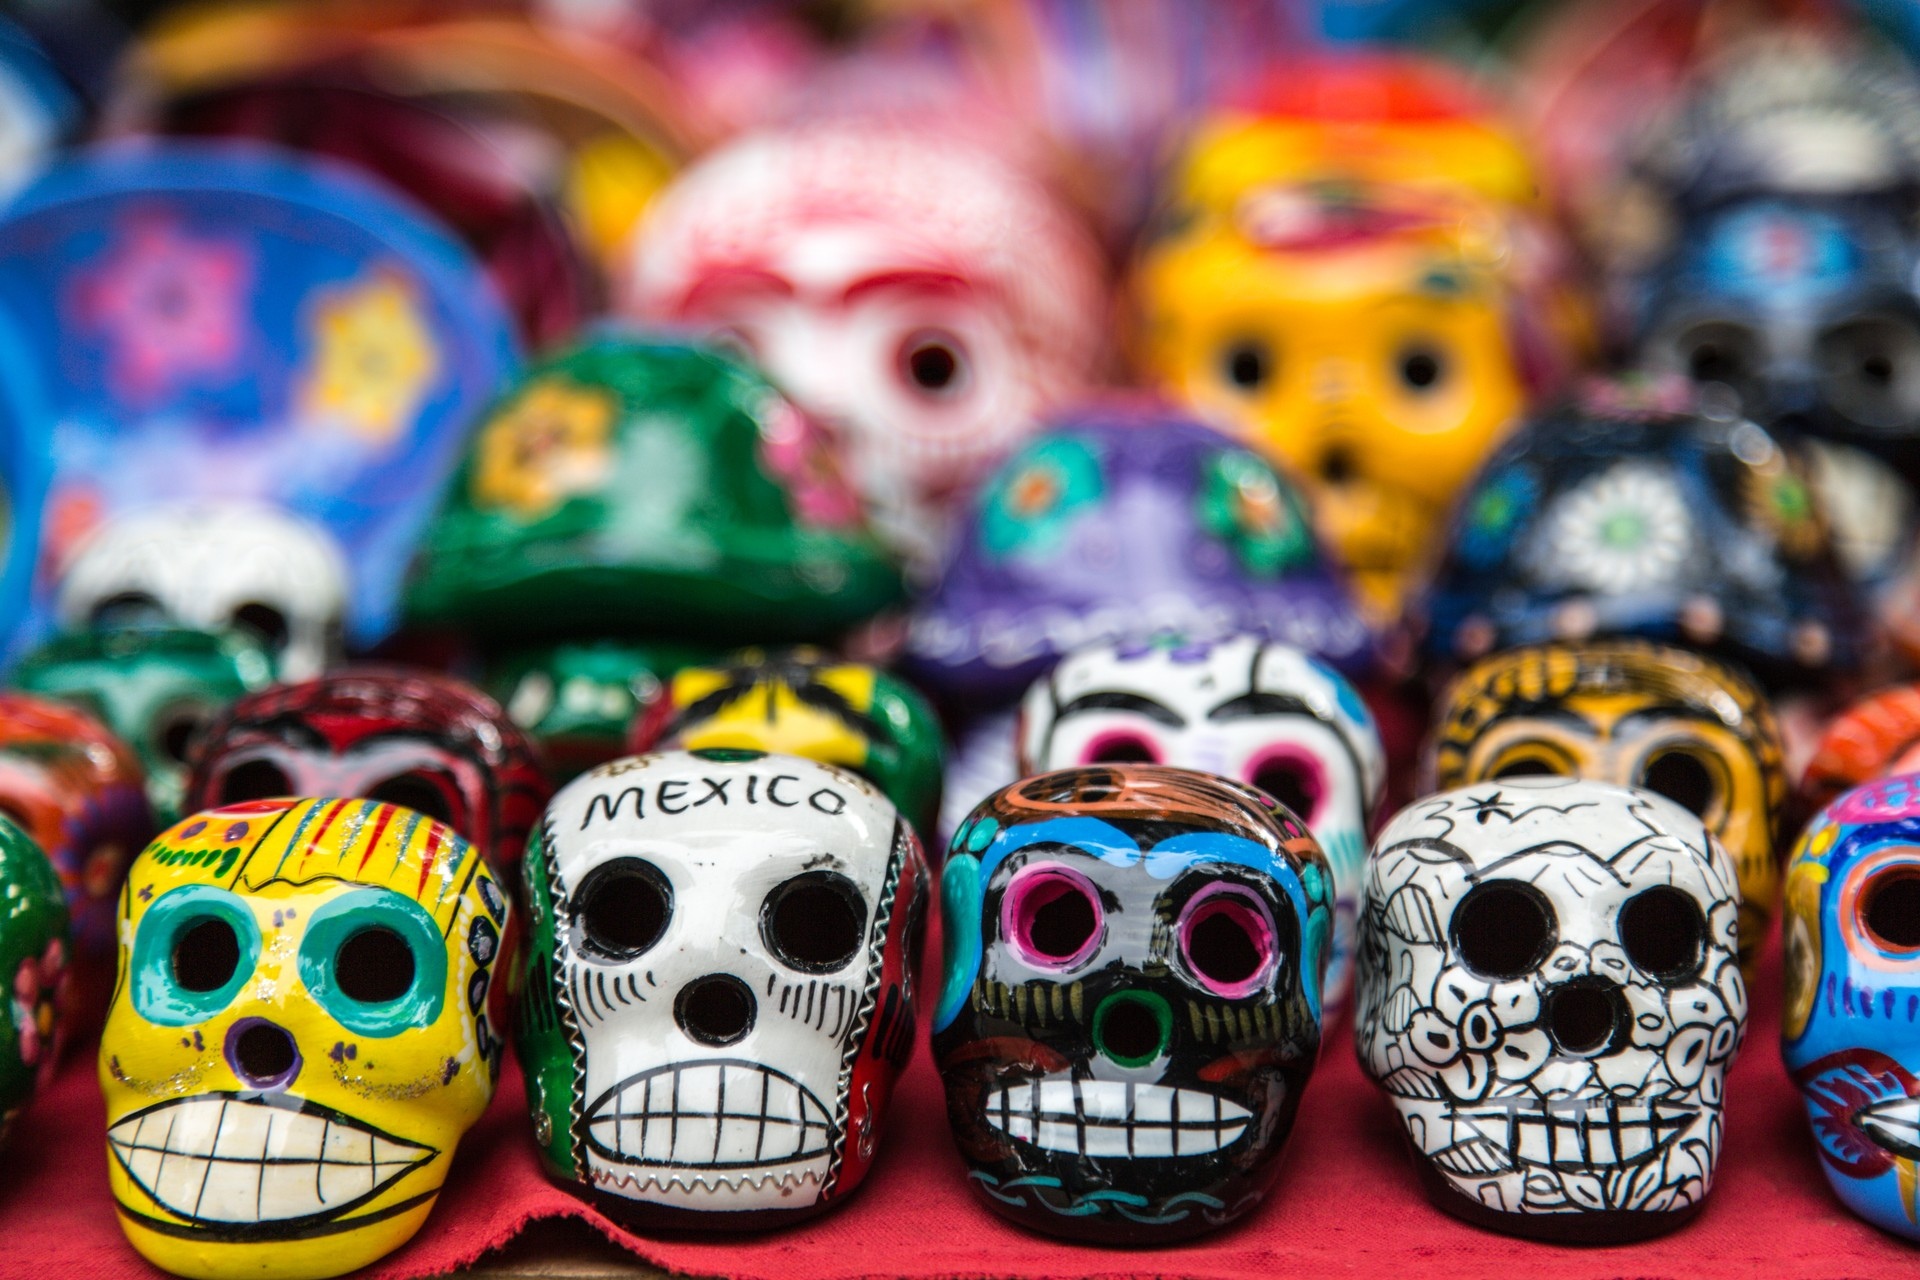 How to experience Mexico's famous Day of the Dead: Decorated Skulls